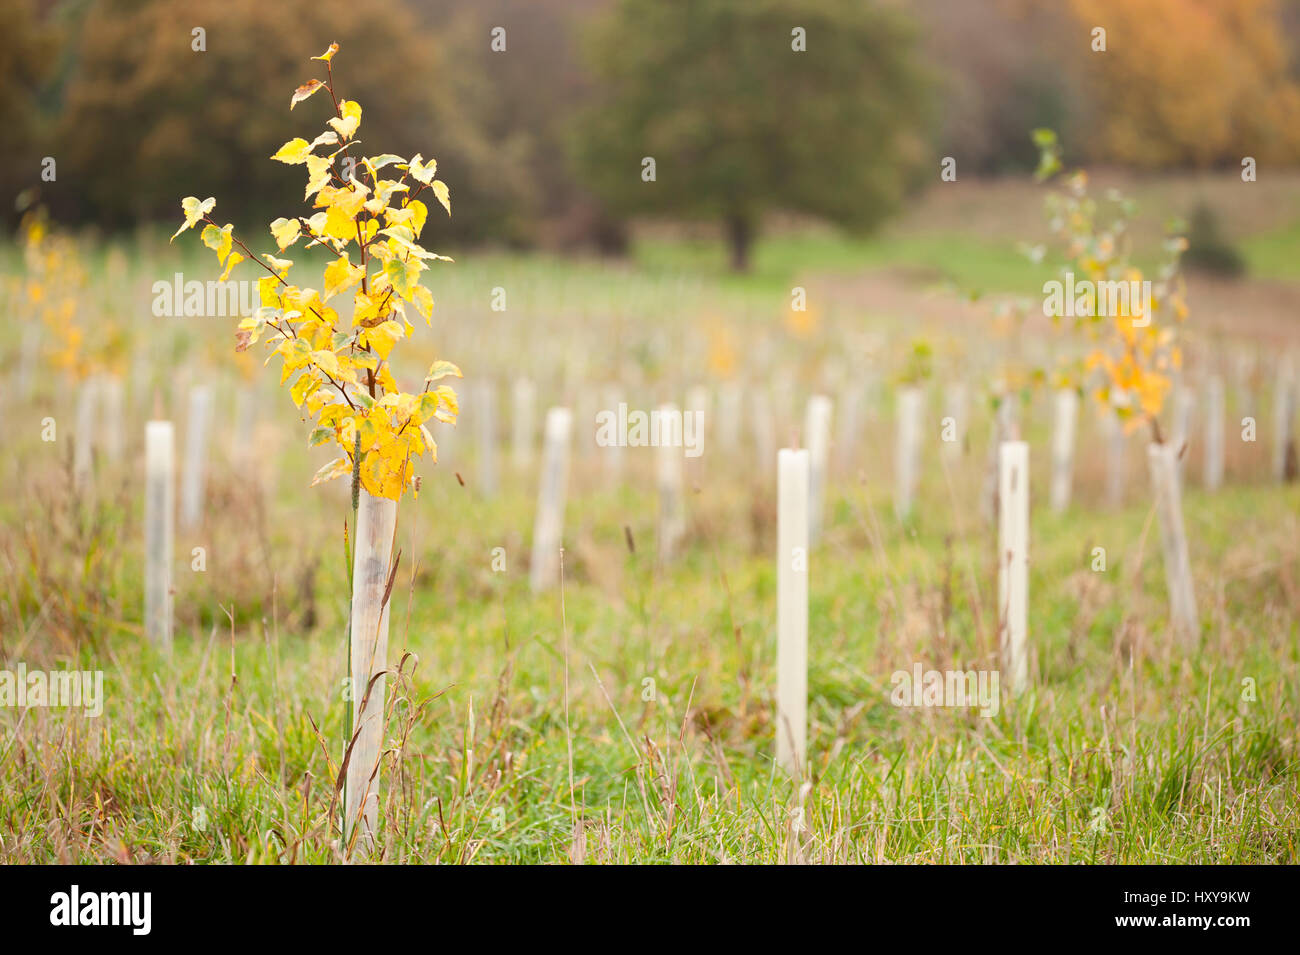 Planting Trees Uk Stock Photos & Planting Trees Uk Stock